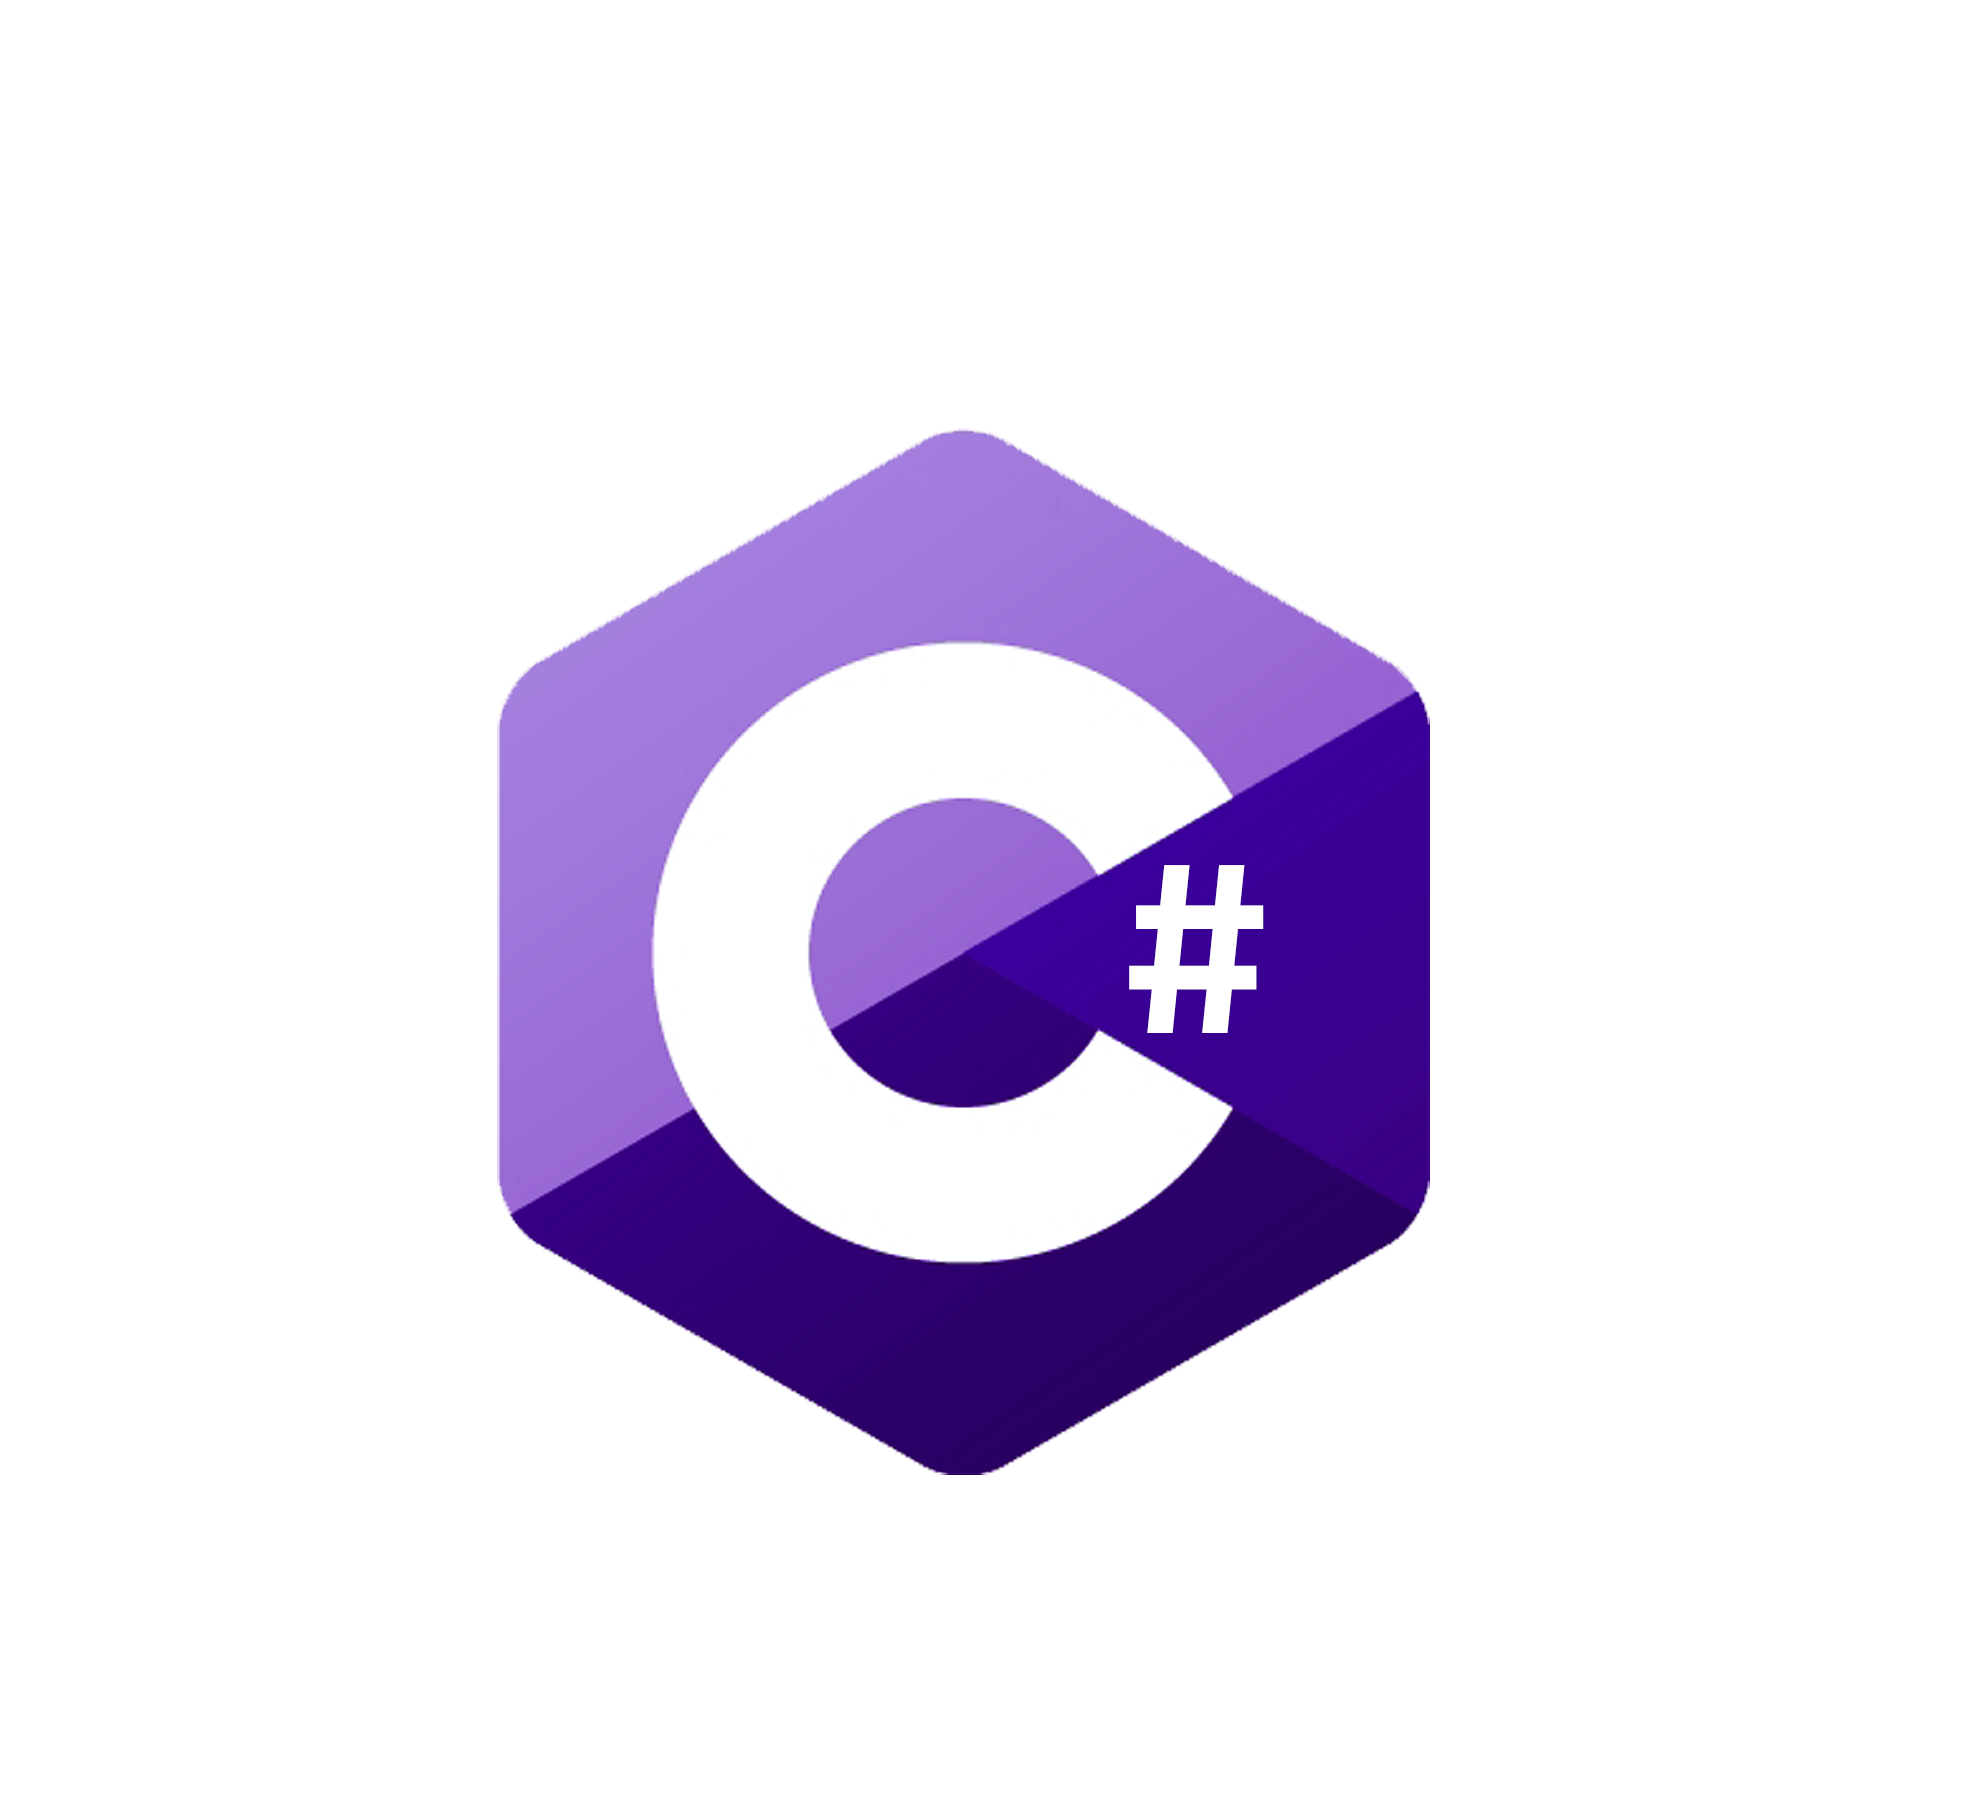 C Logo For Stickers Stuff Originally Posted At By Chris Mckee Medium